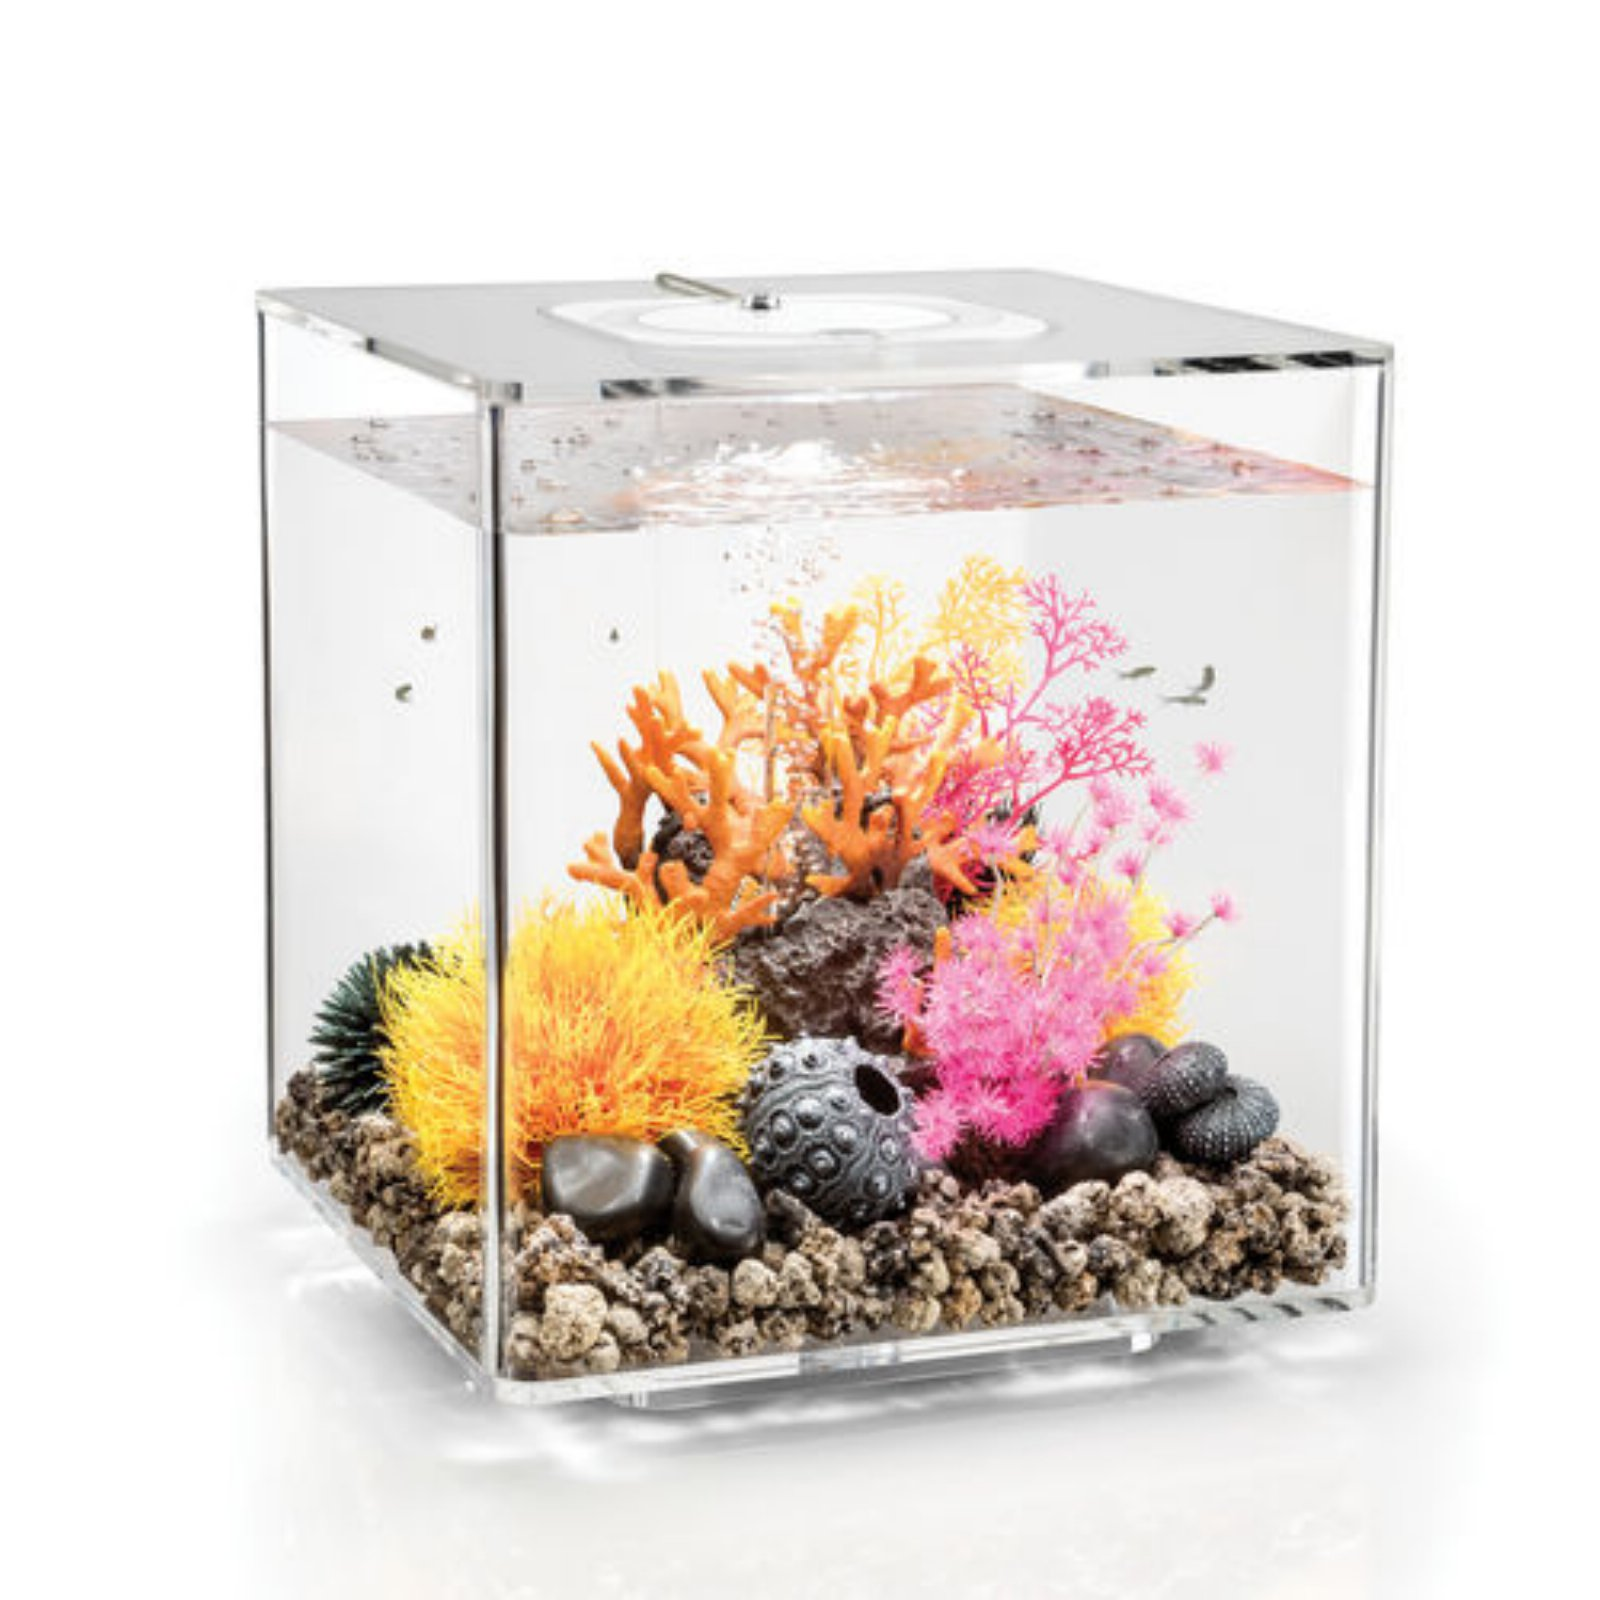 biOrb by Oase CUBE 30 Aquarium with MCR Light